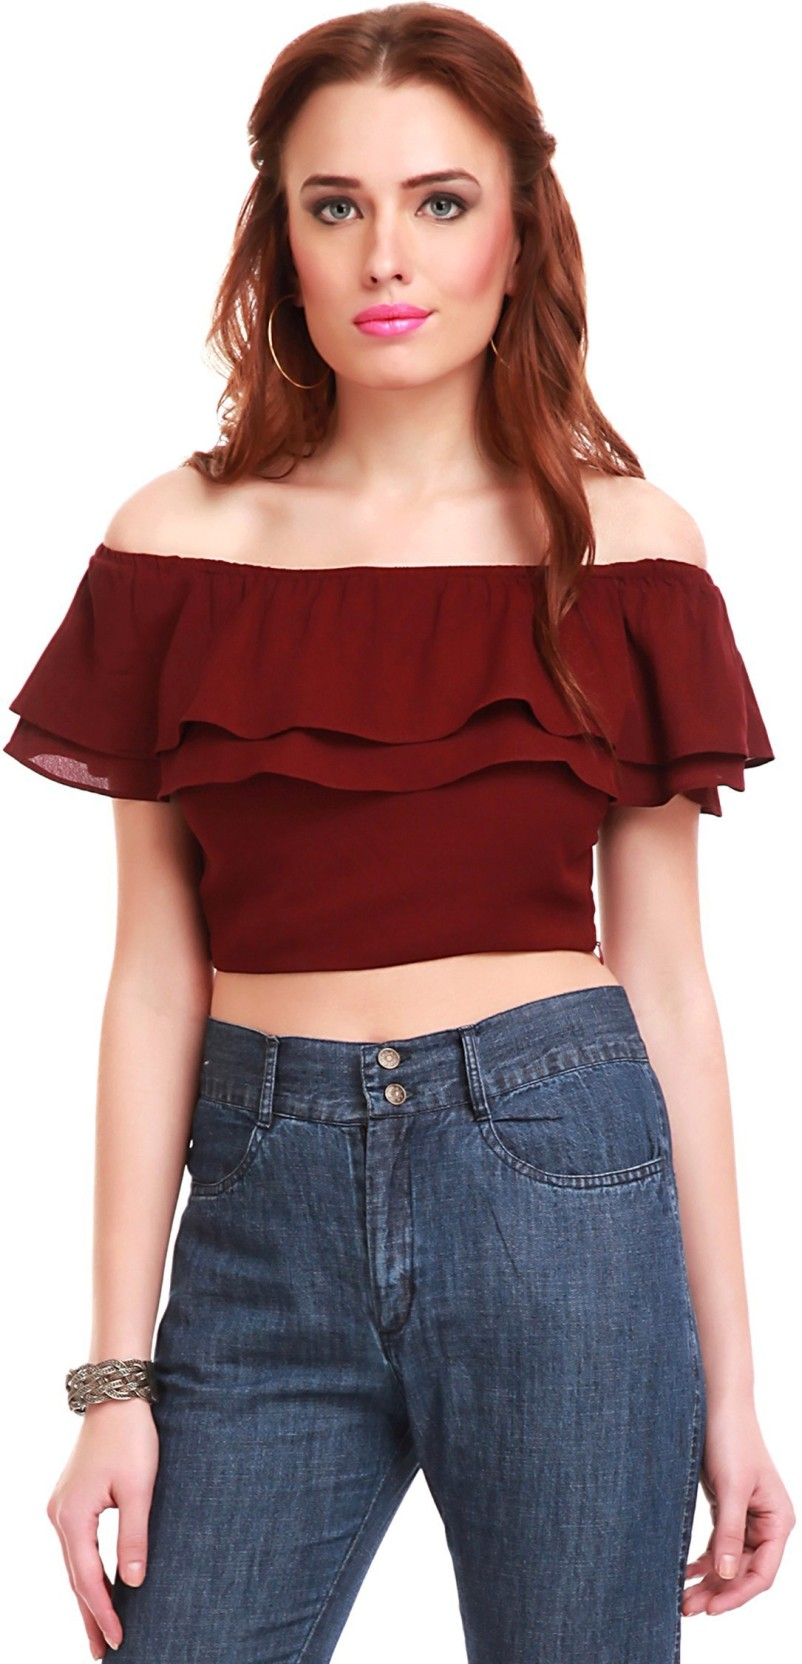 c3a357199a1dca Sassafras Party Cape Sleeve Solid Women's Maroon Top - Buy Maroon ...